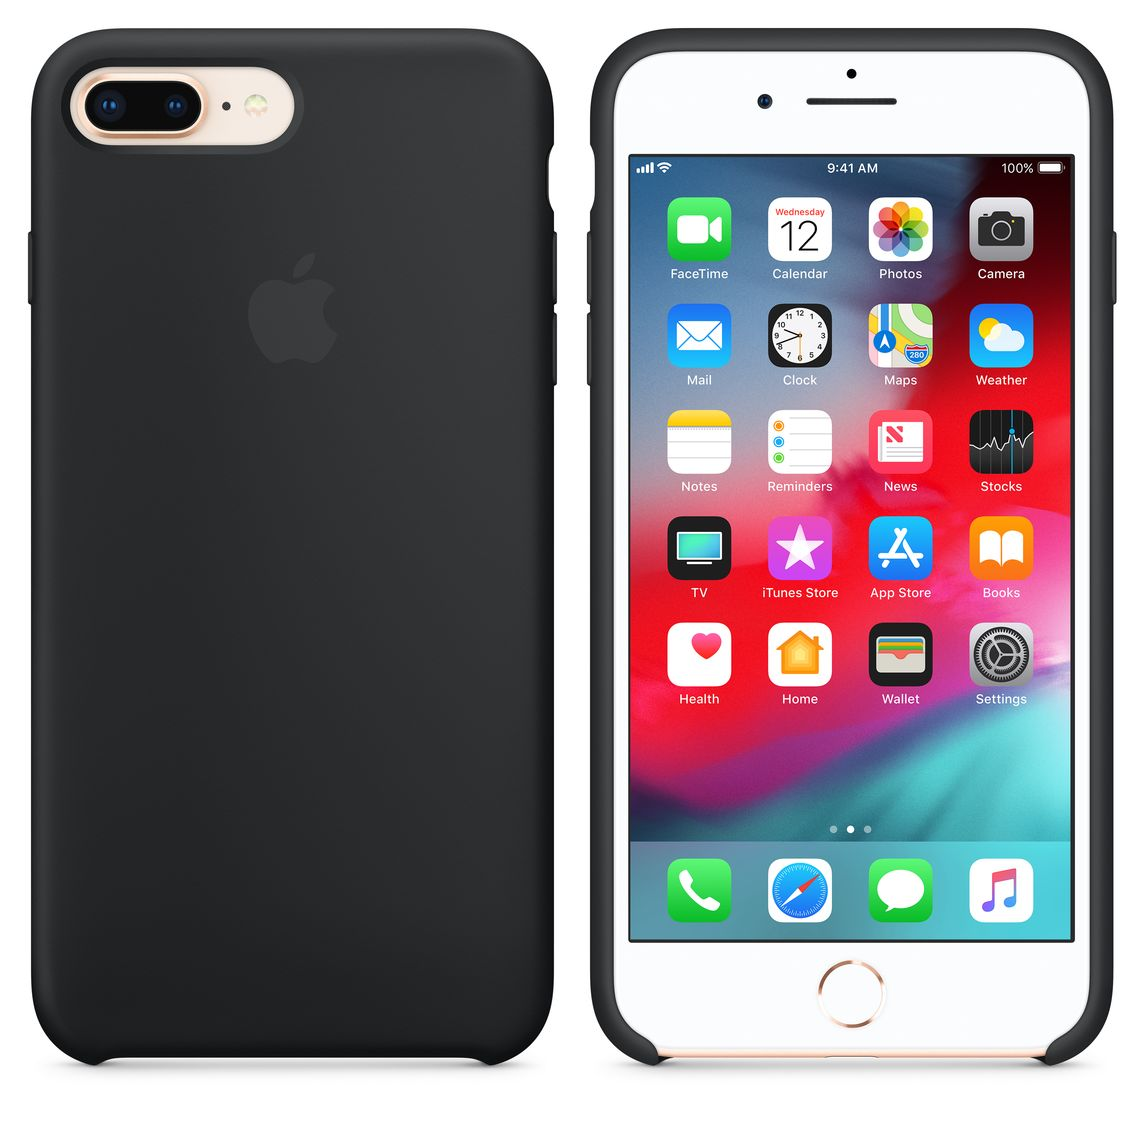 separation shoes c327f b3390 iPhone 8 Plus / 7 Plus Silicone Case - Black - Apple